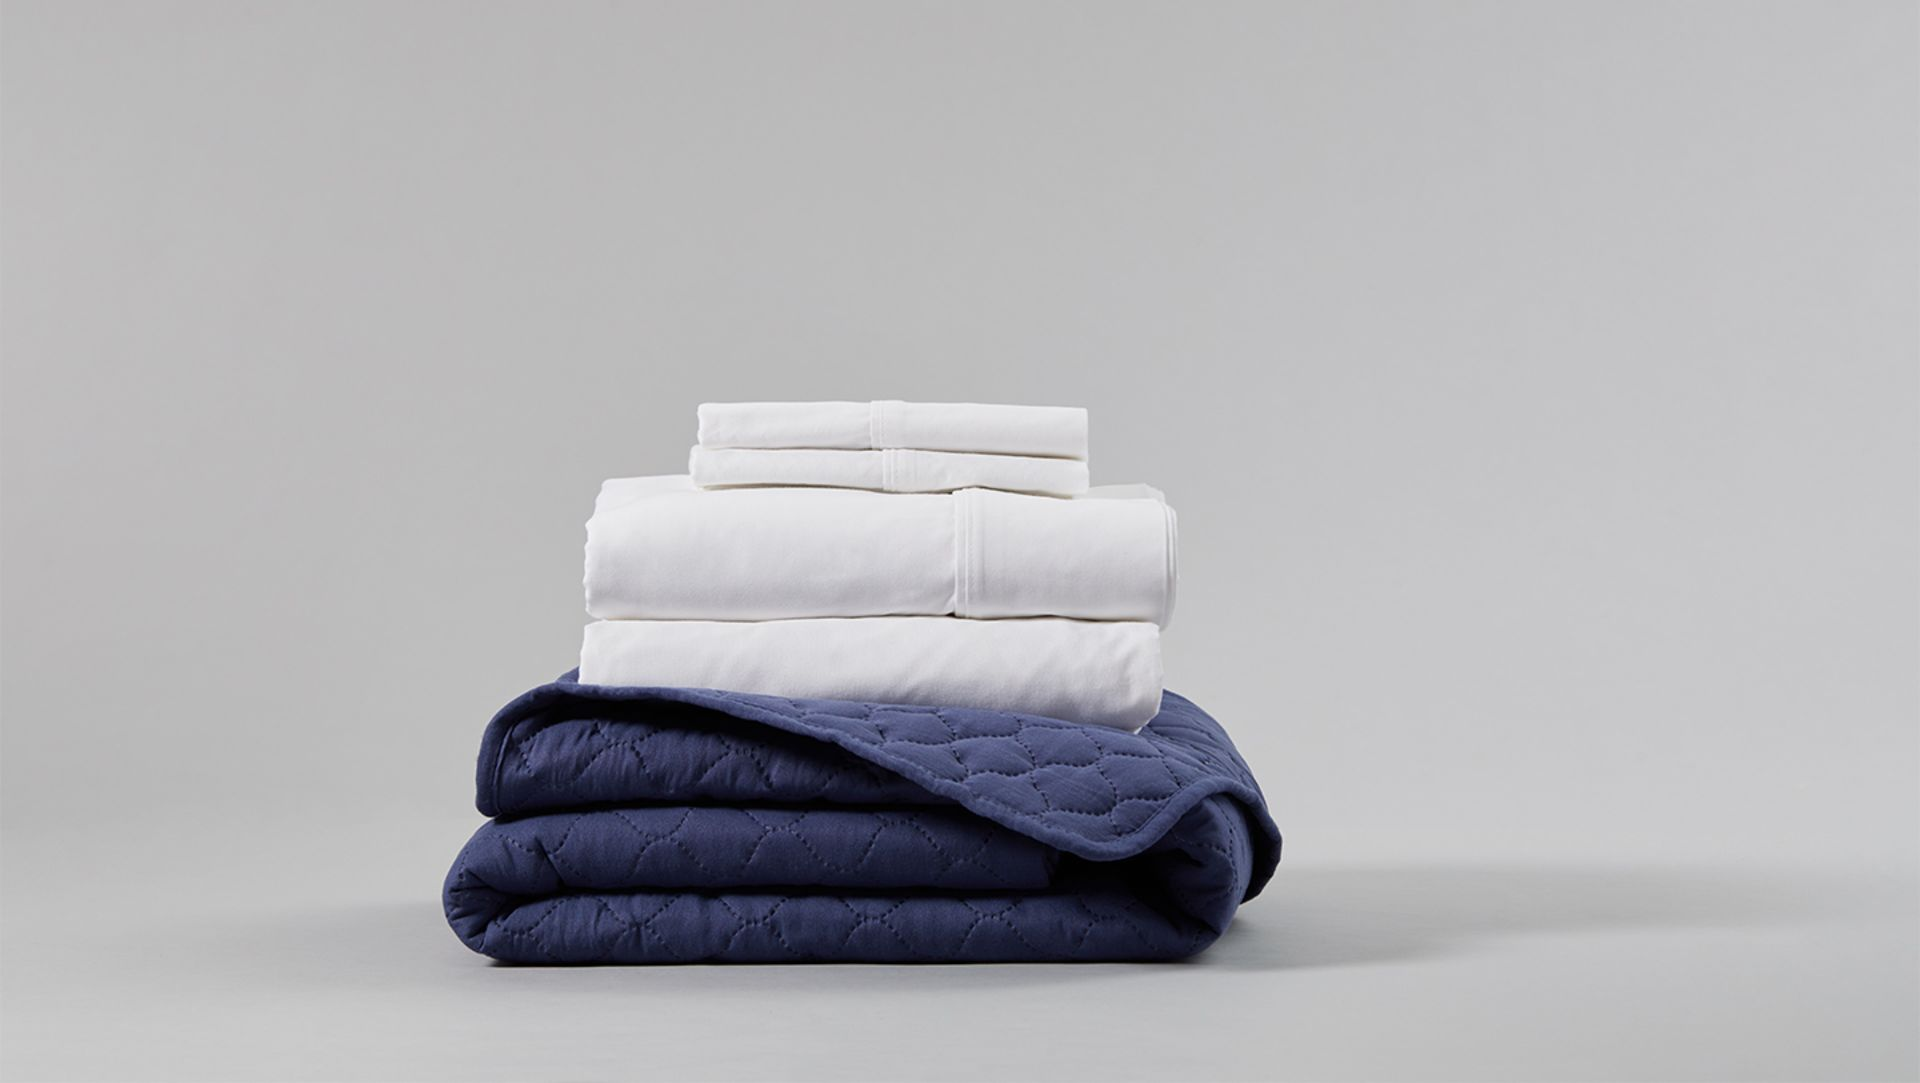 A pile of neatly folded, clean garments